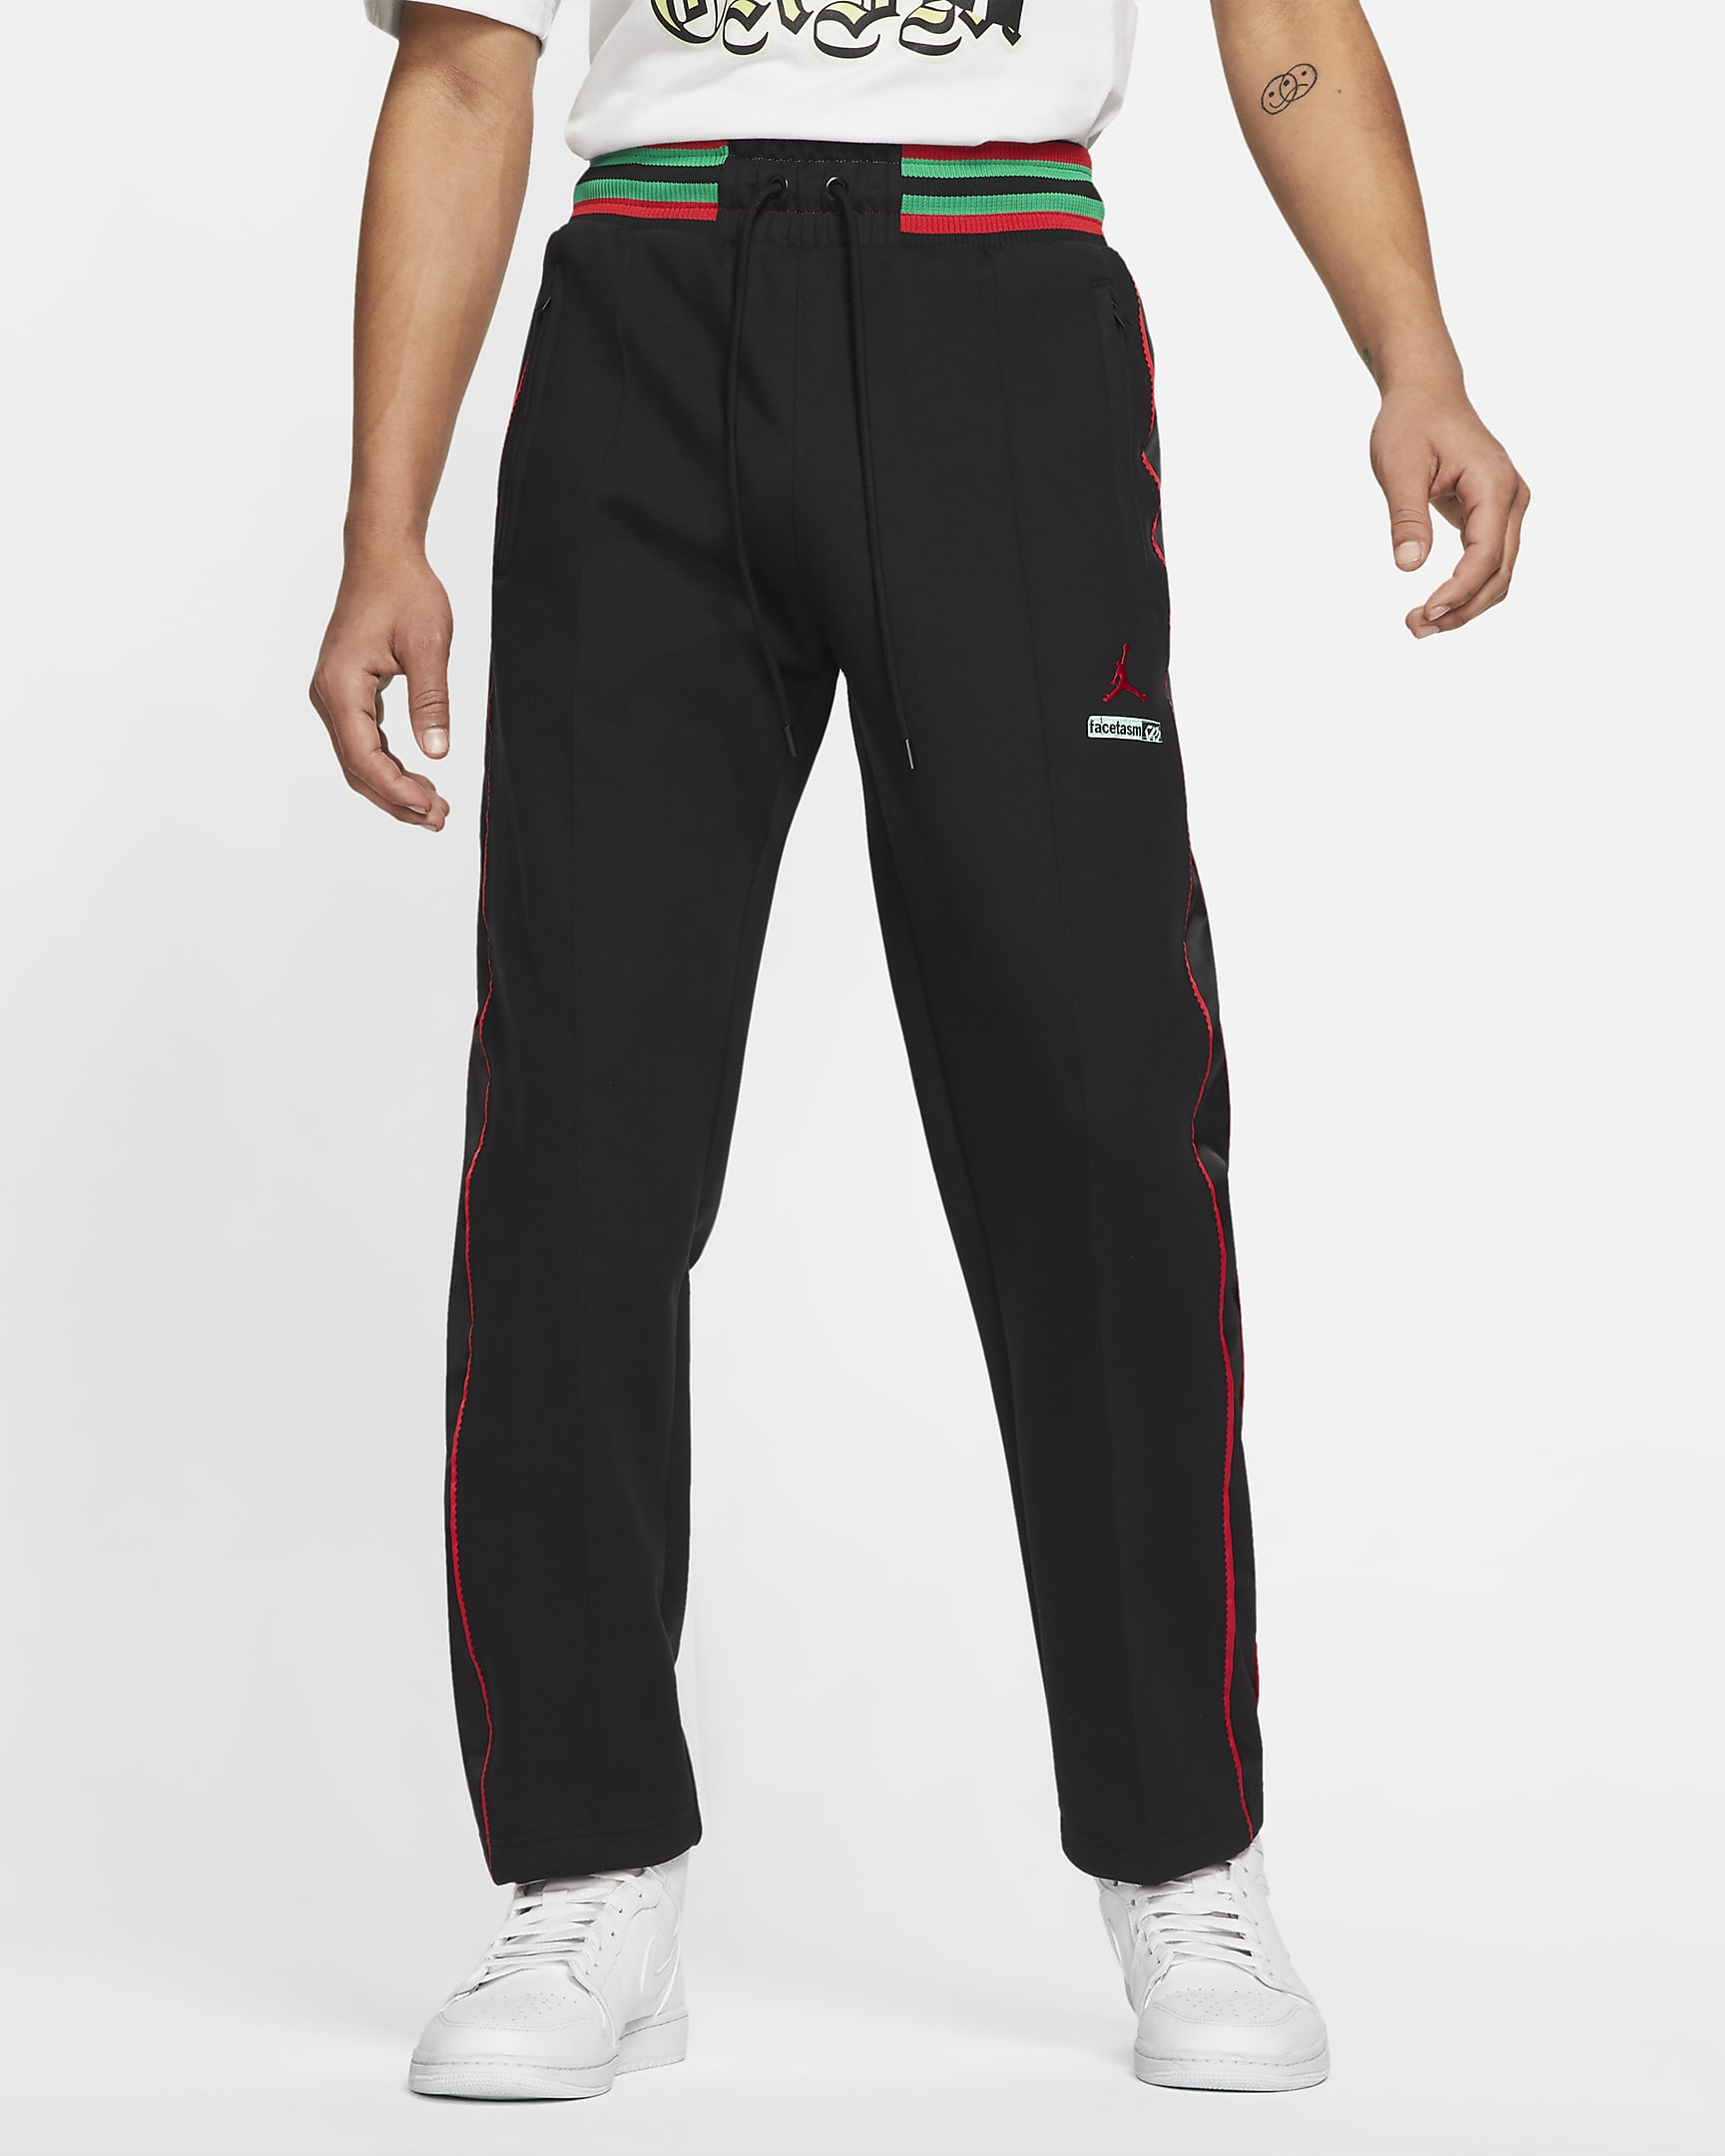 jordan-why-not-x-facetasm-mens-track-pants-lnL7tj-1